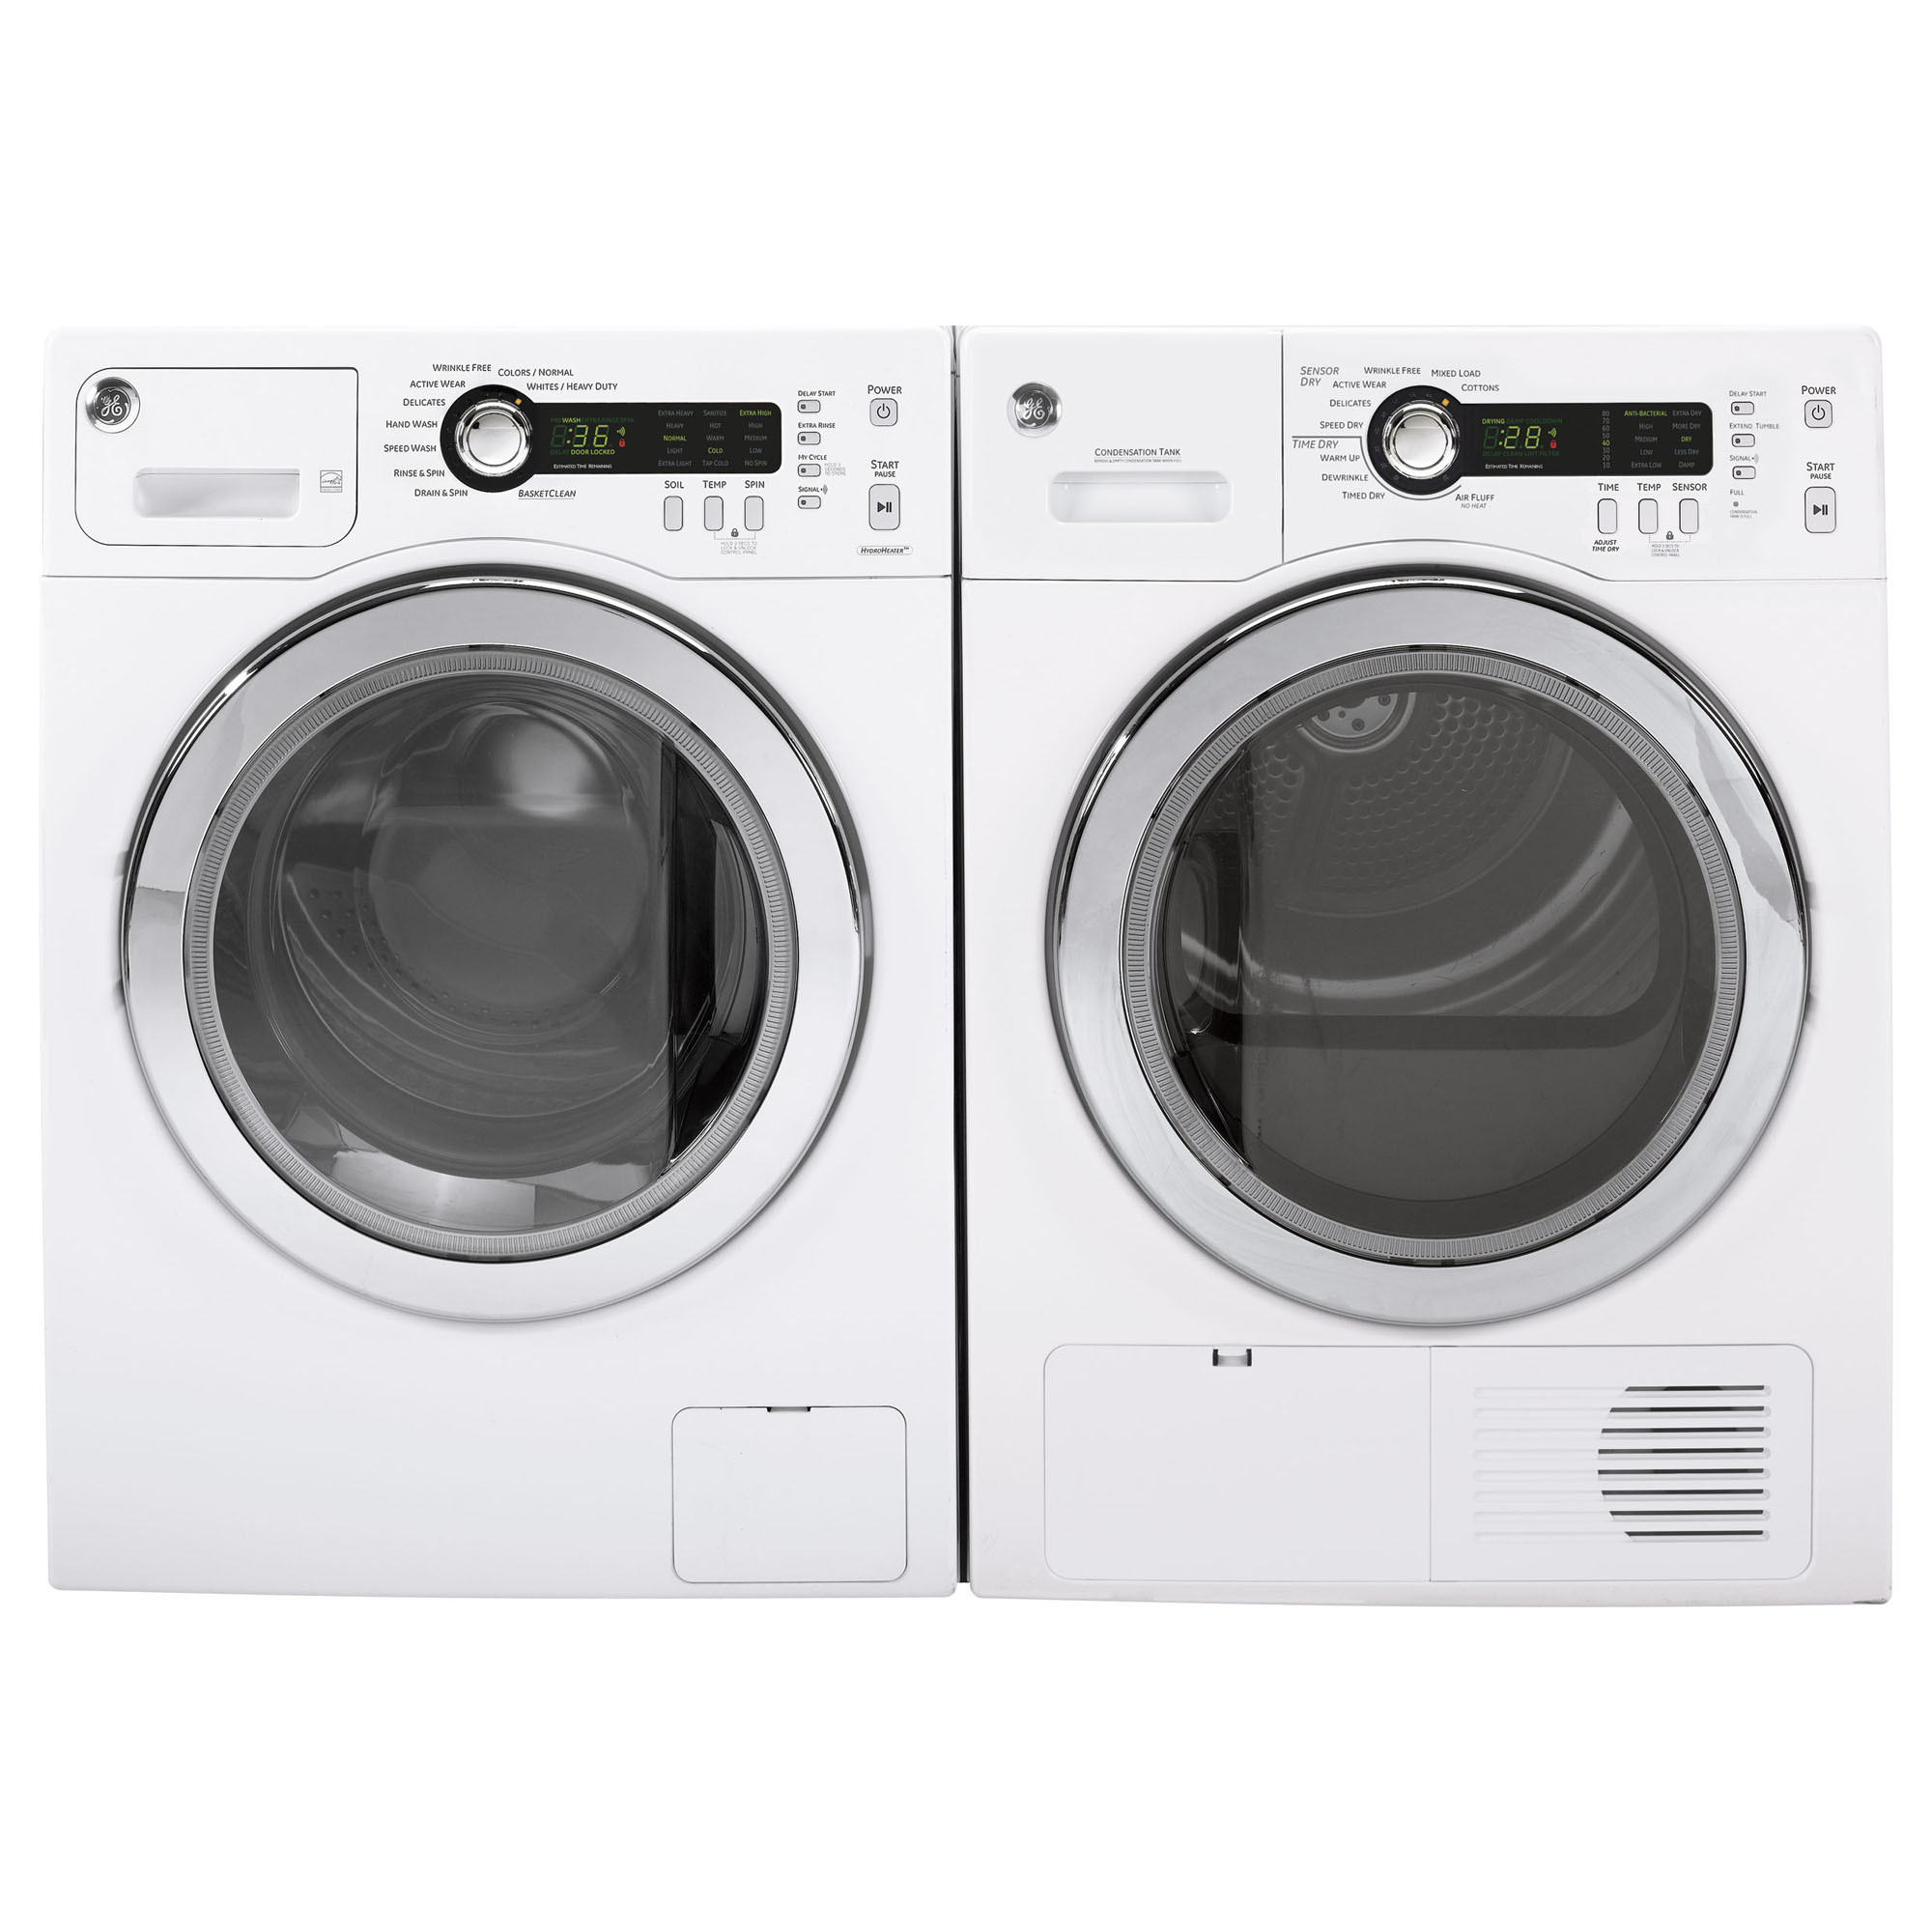 GE Appliances WCVH4800KWW 2.2 cu. ft. Front-load Washer - White WCVH4800KWW